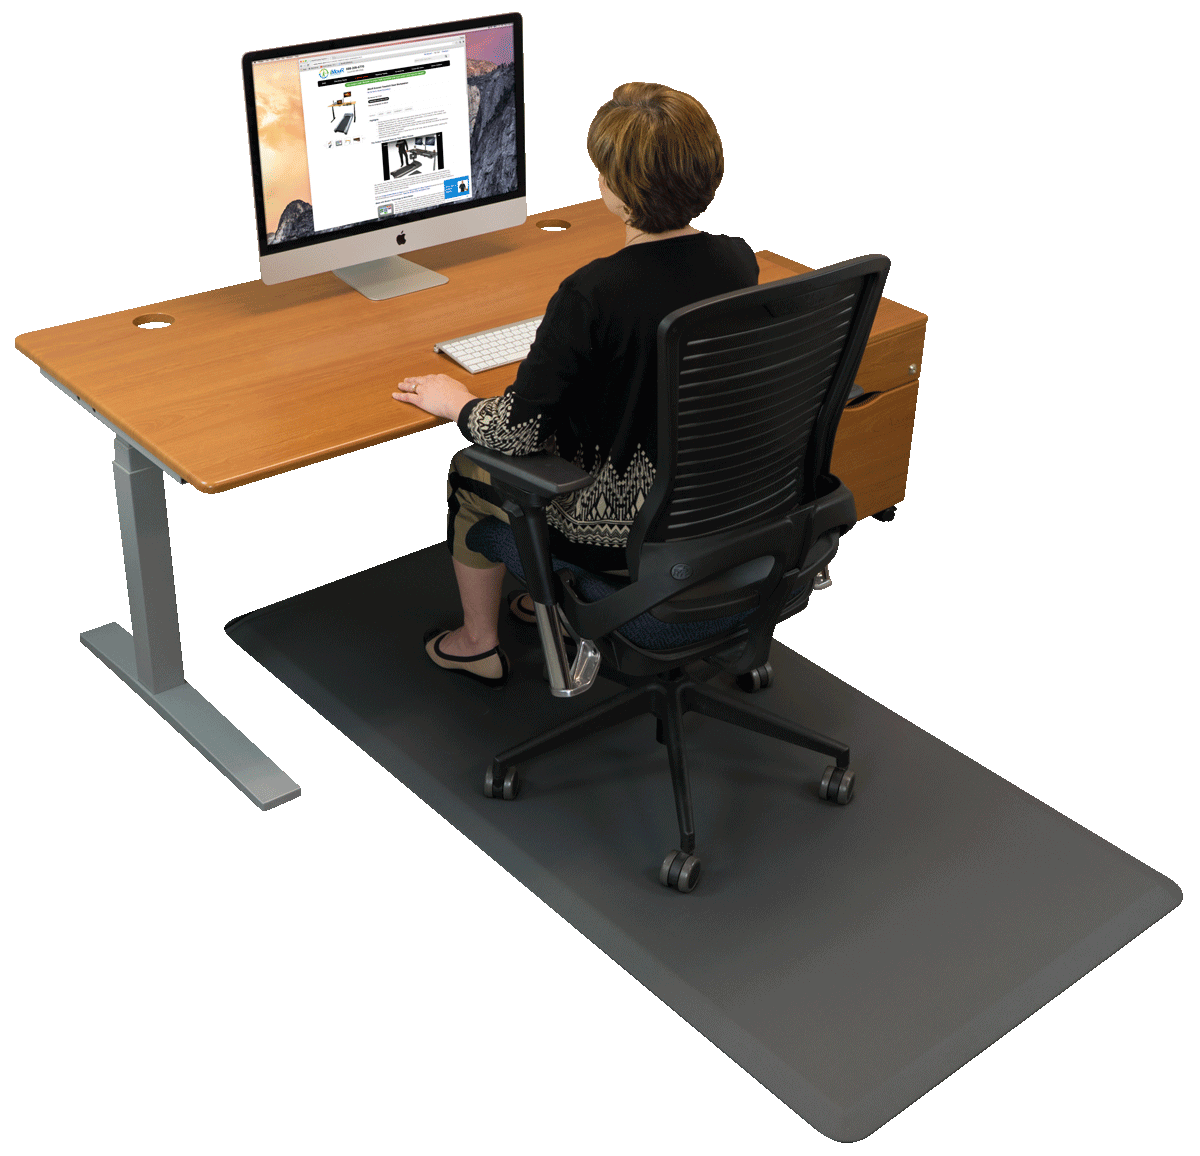 ergonomic chair mat fishing bed dimensions buy anti fatigue mats best for standing desks imovr hybrid sit stand